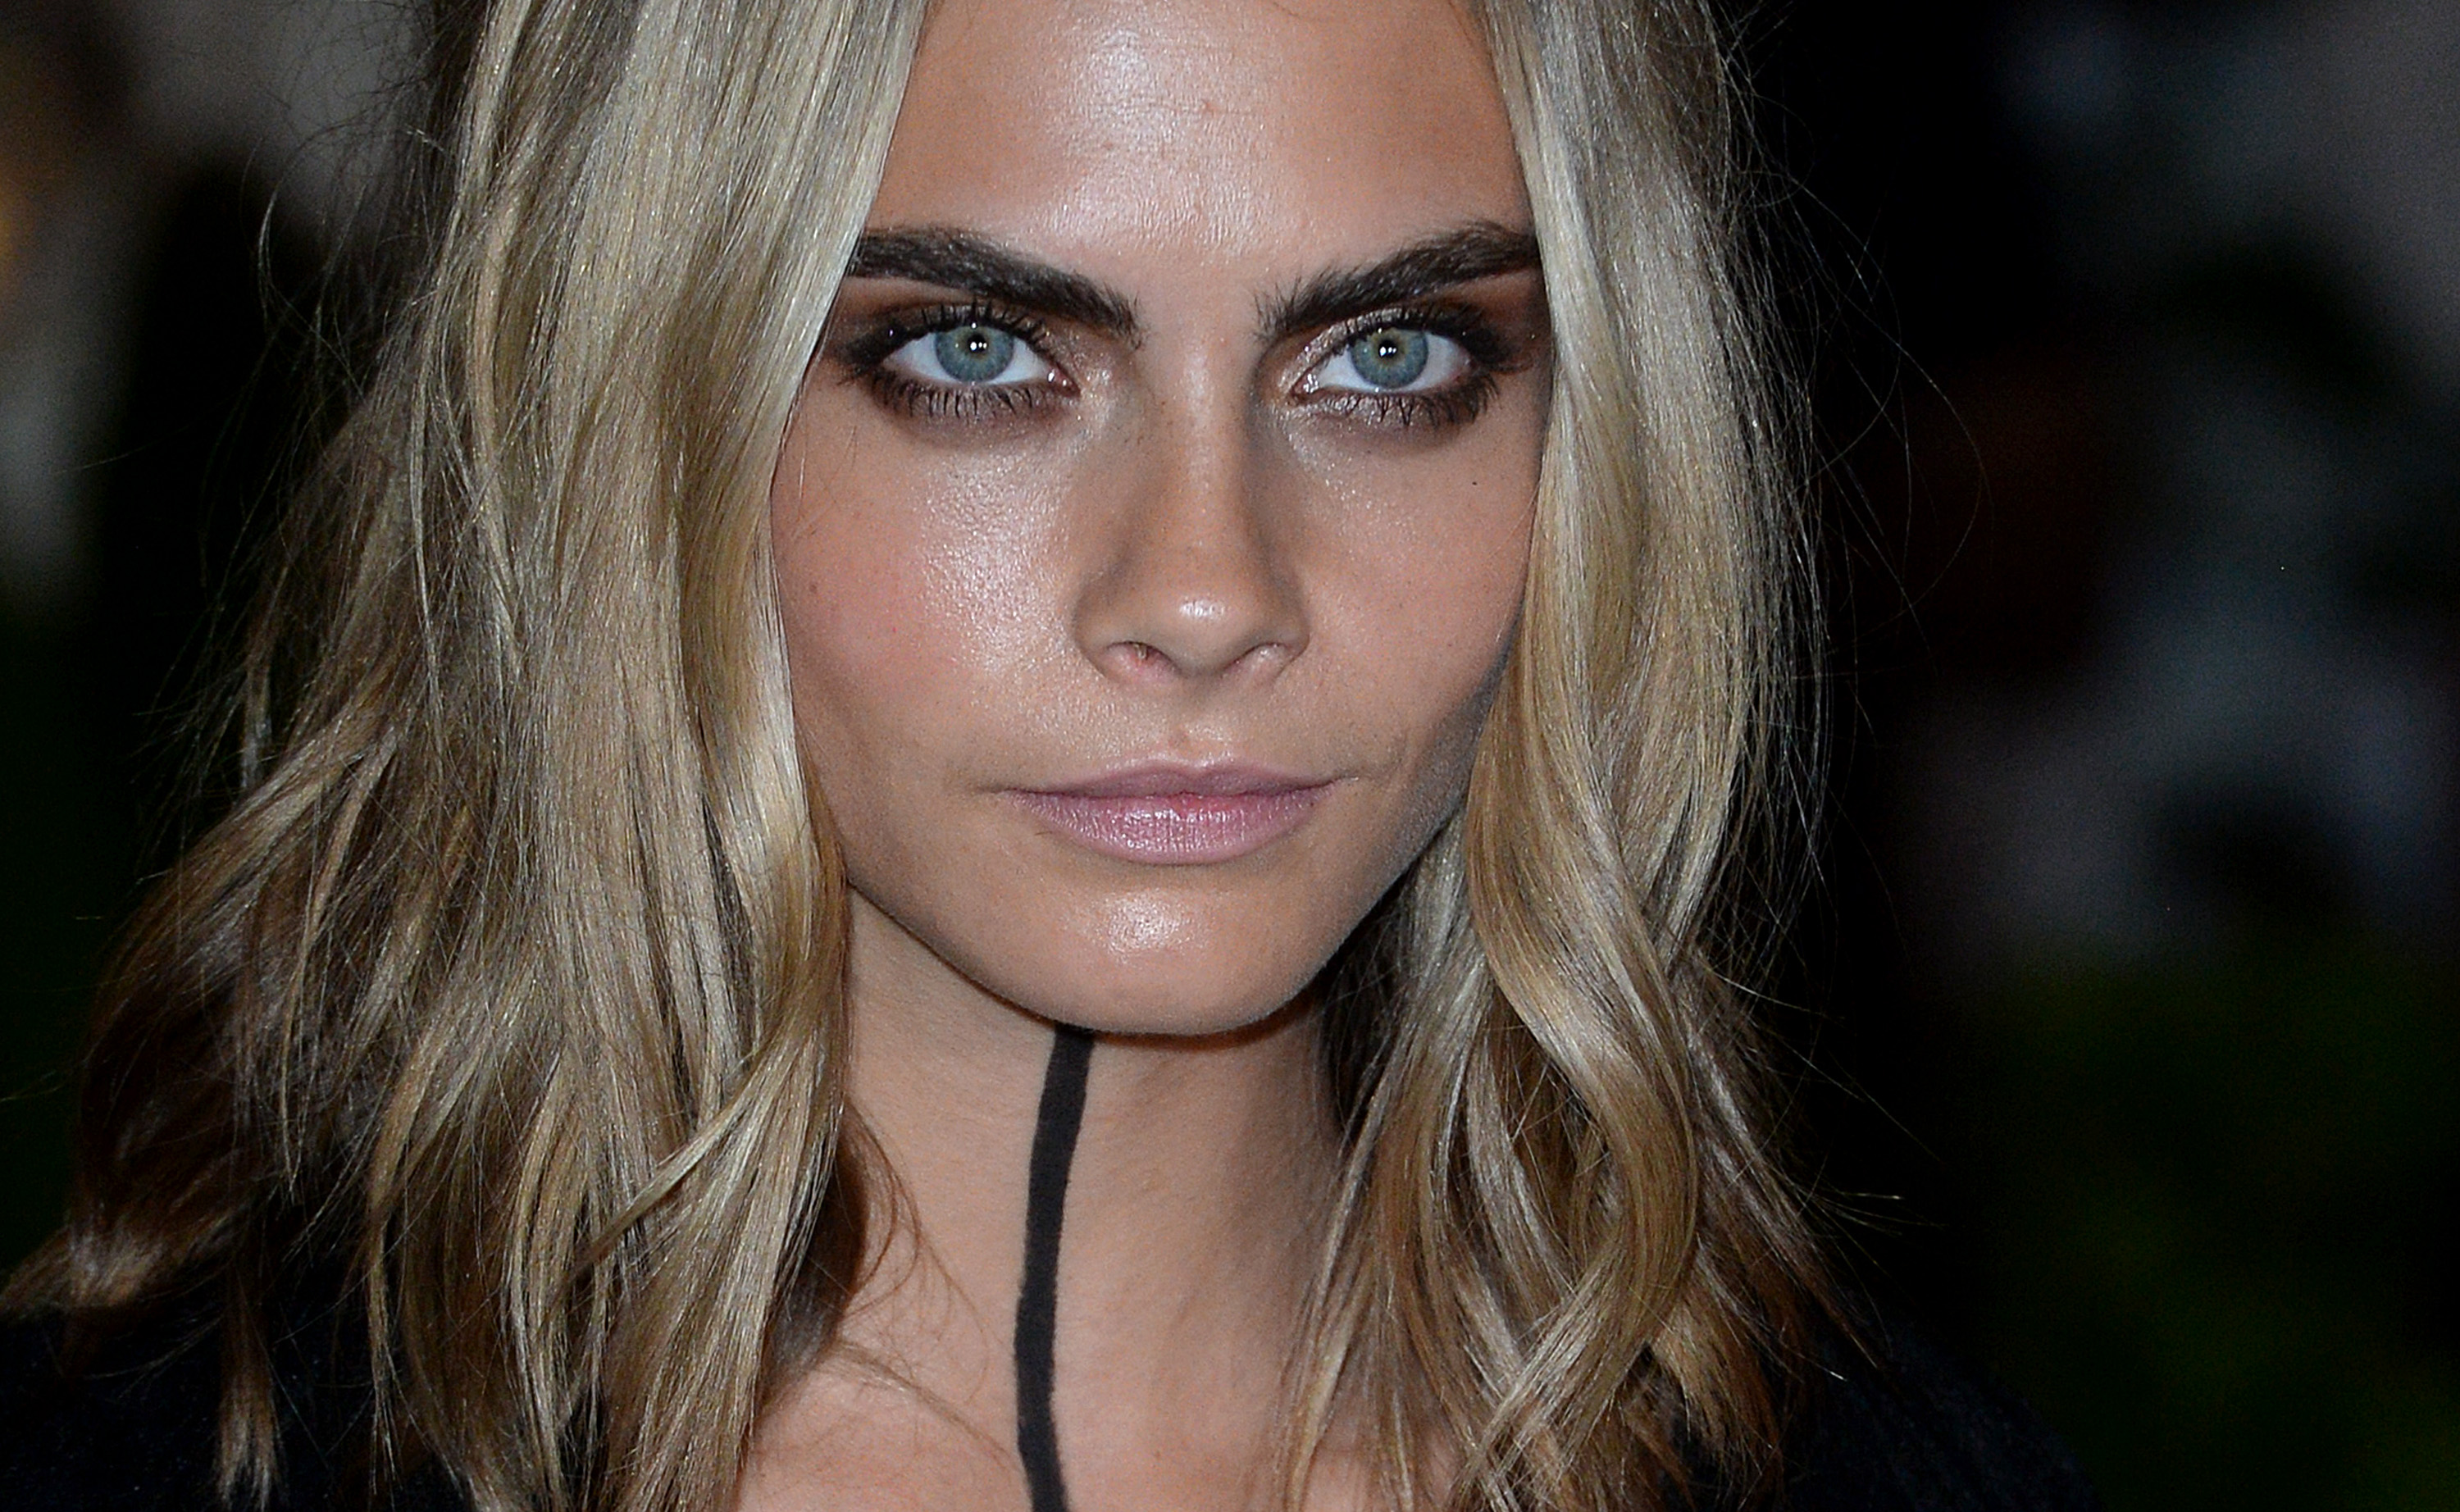 Cara Delevingne is insulted that Taylor Swift's cat is so rude